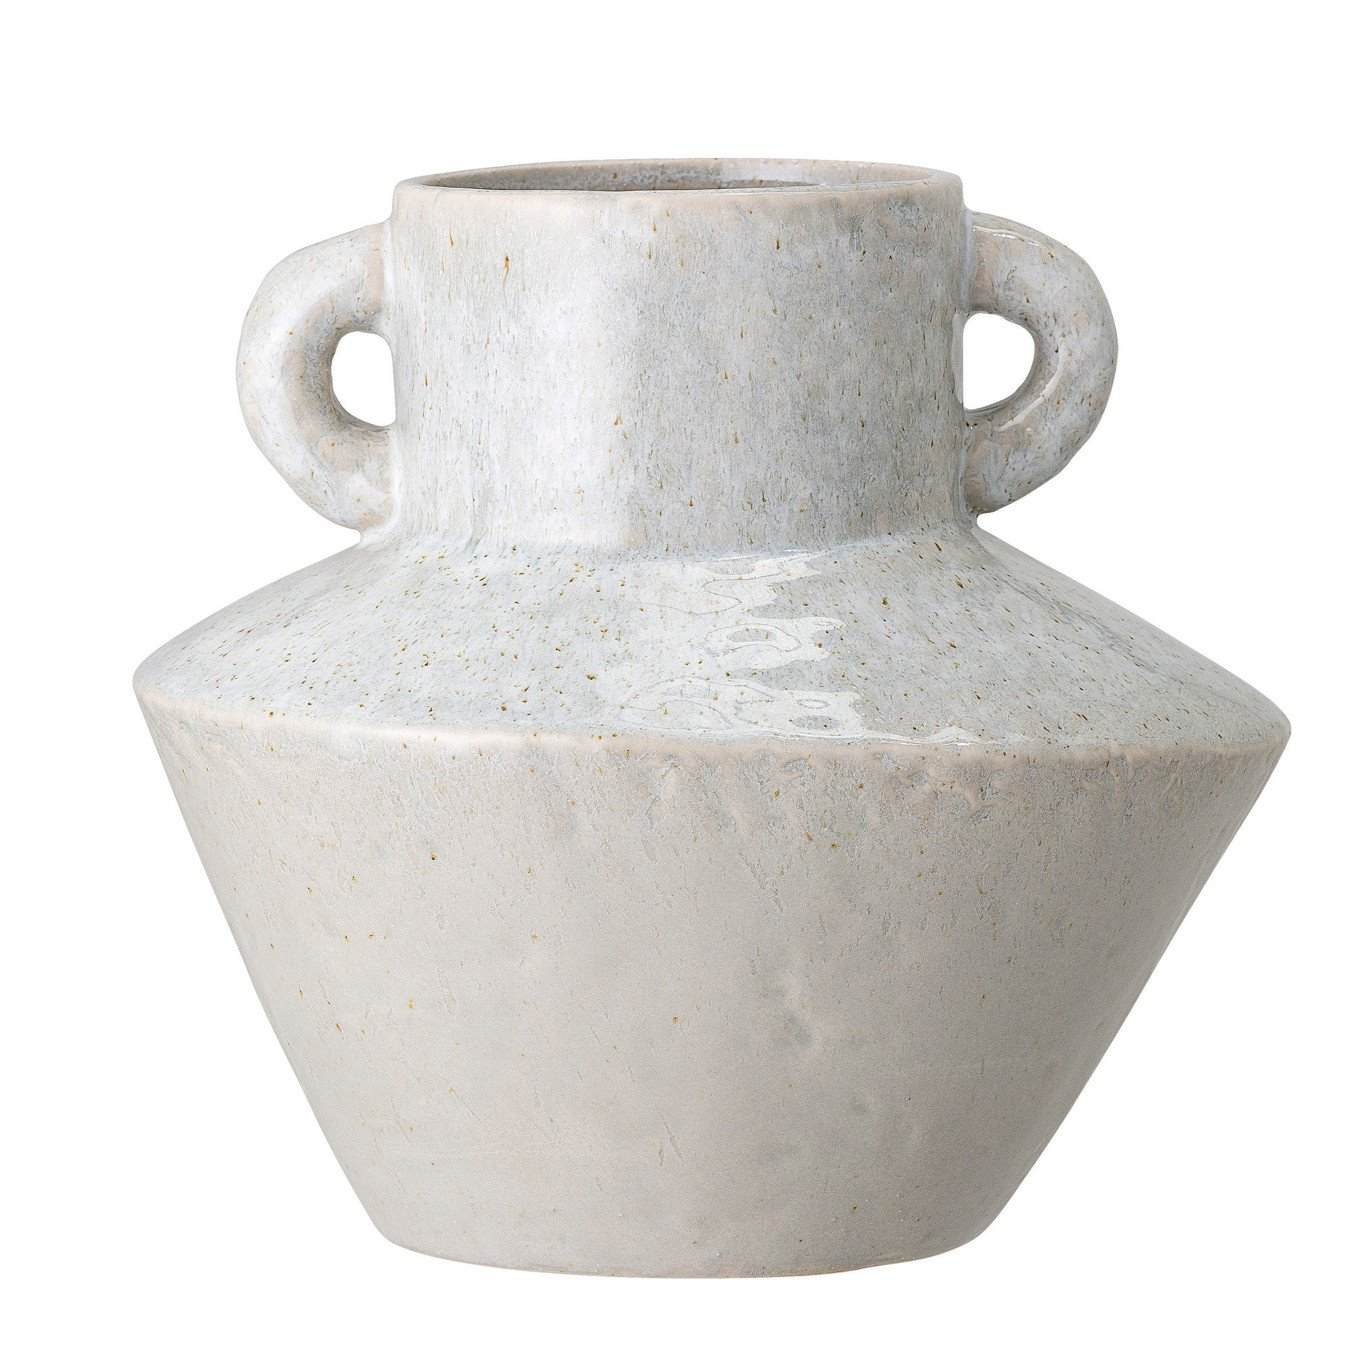 """8.25""""H Stoneware Vase with Reactive Glaze Finish & Vertical Handles (Each one will vary)"""